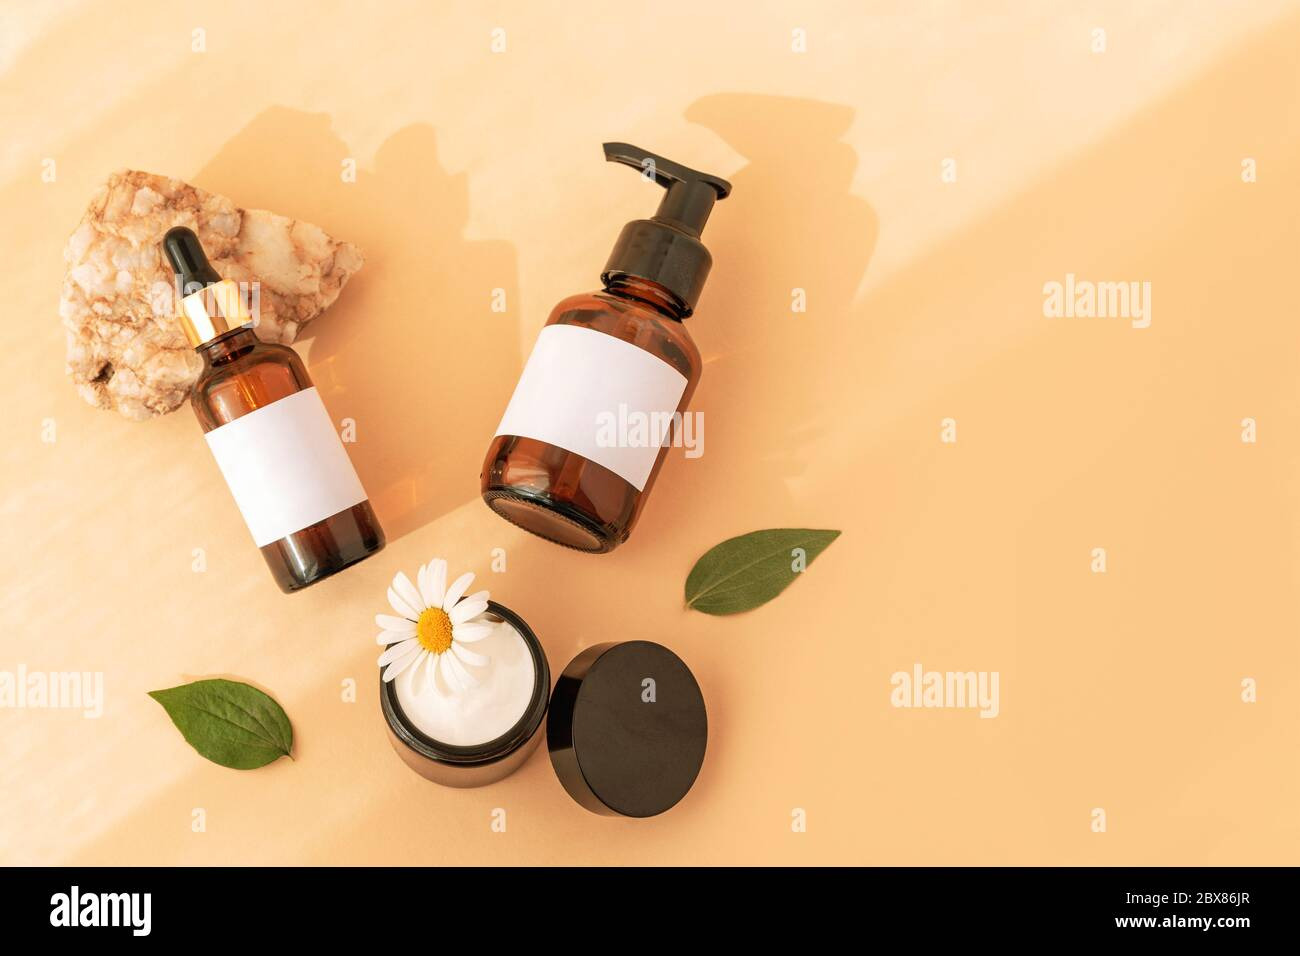 Beauty Products Wash Gel Cream Jar Serum Unbranded Bank Packages On Natural Stone Yellow Background Top View Natural Cosmetics And Skin Care Con Stock Photo Alamy